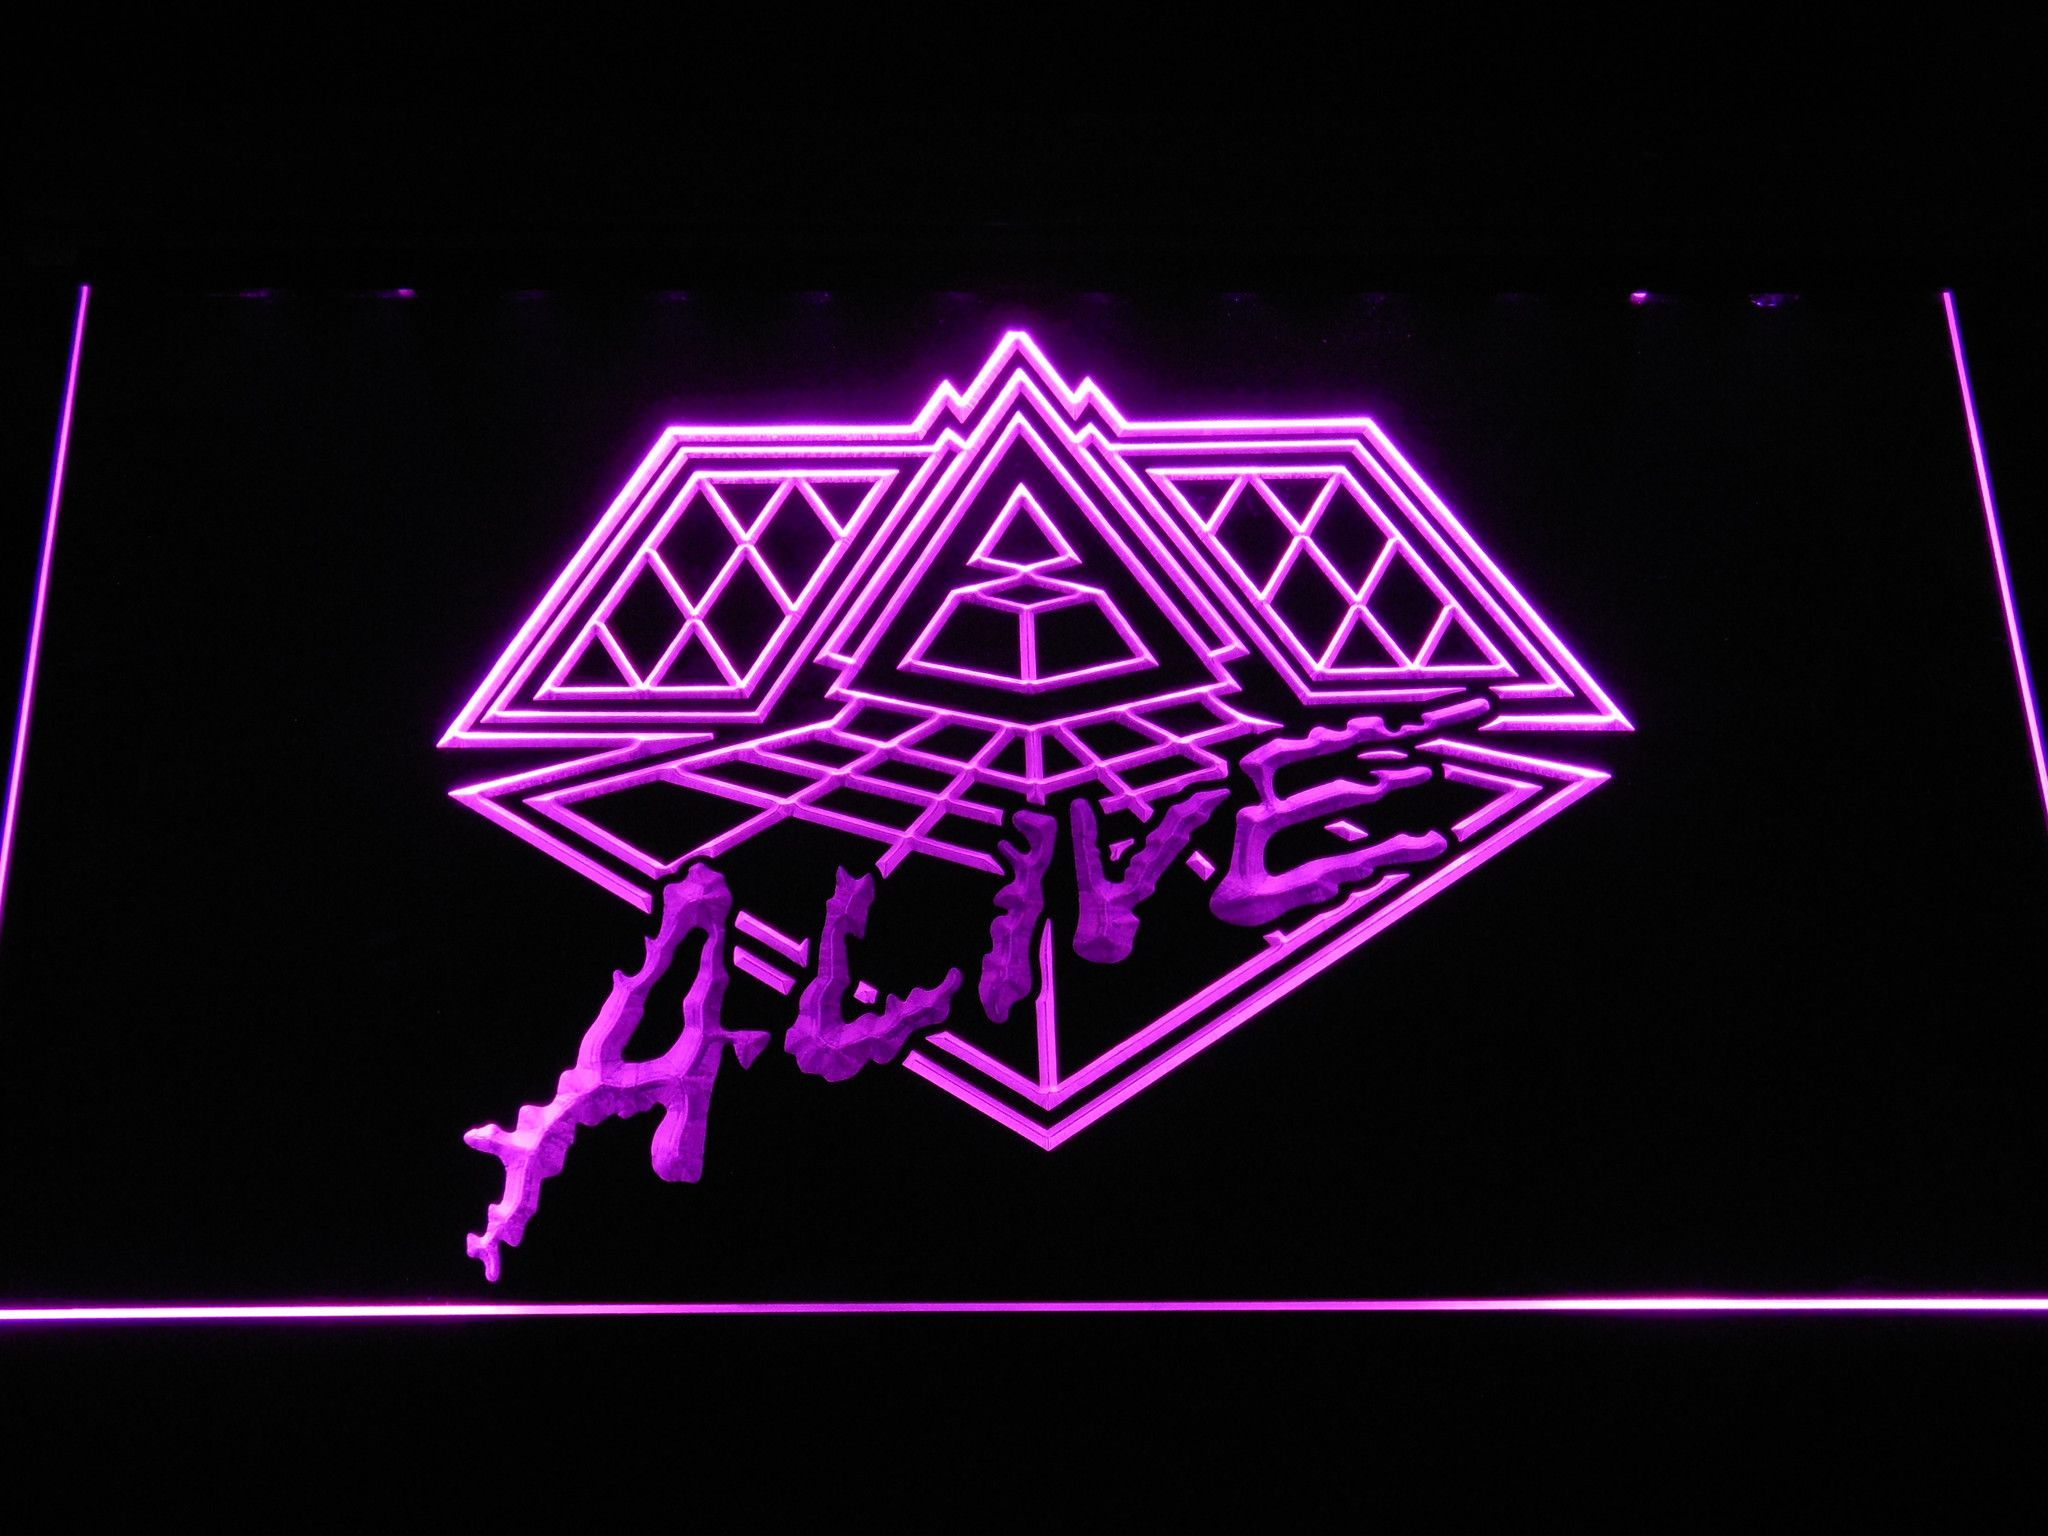 Daft punk alive led neon sign neon signs neon signs